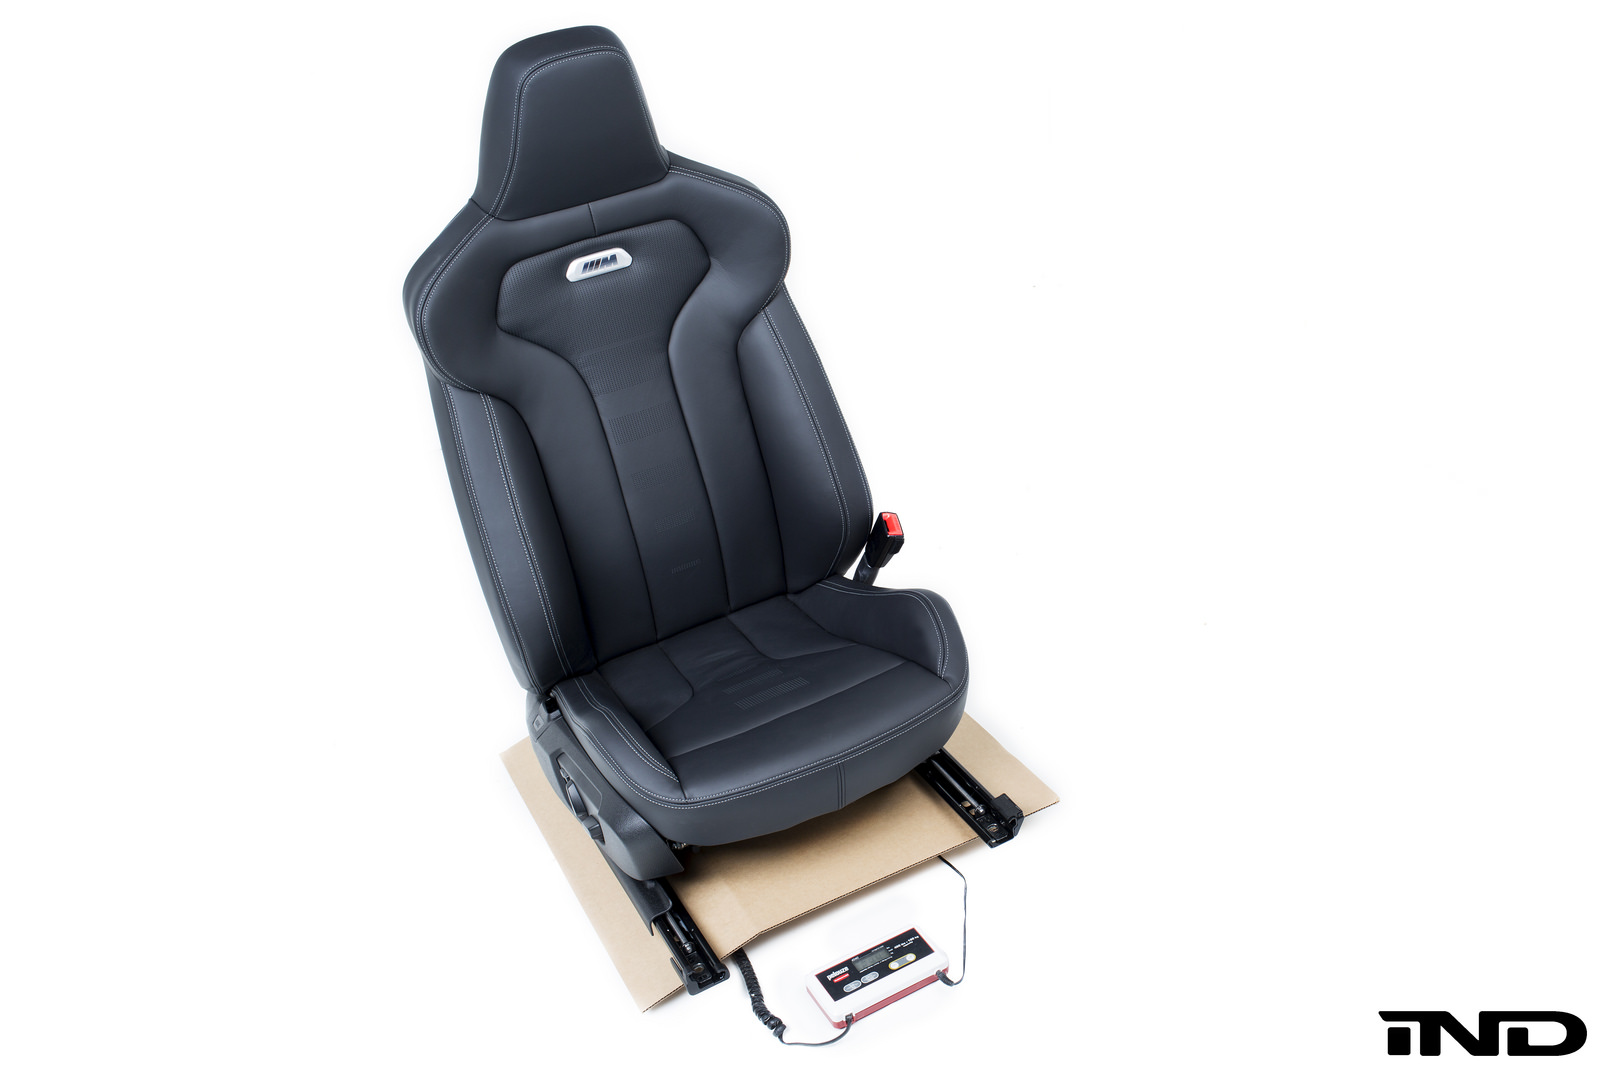 BMW+Recaro+Seats BMW F80 M3 Gets Recaro Seats - autoevolution